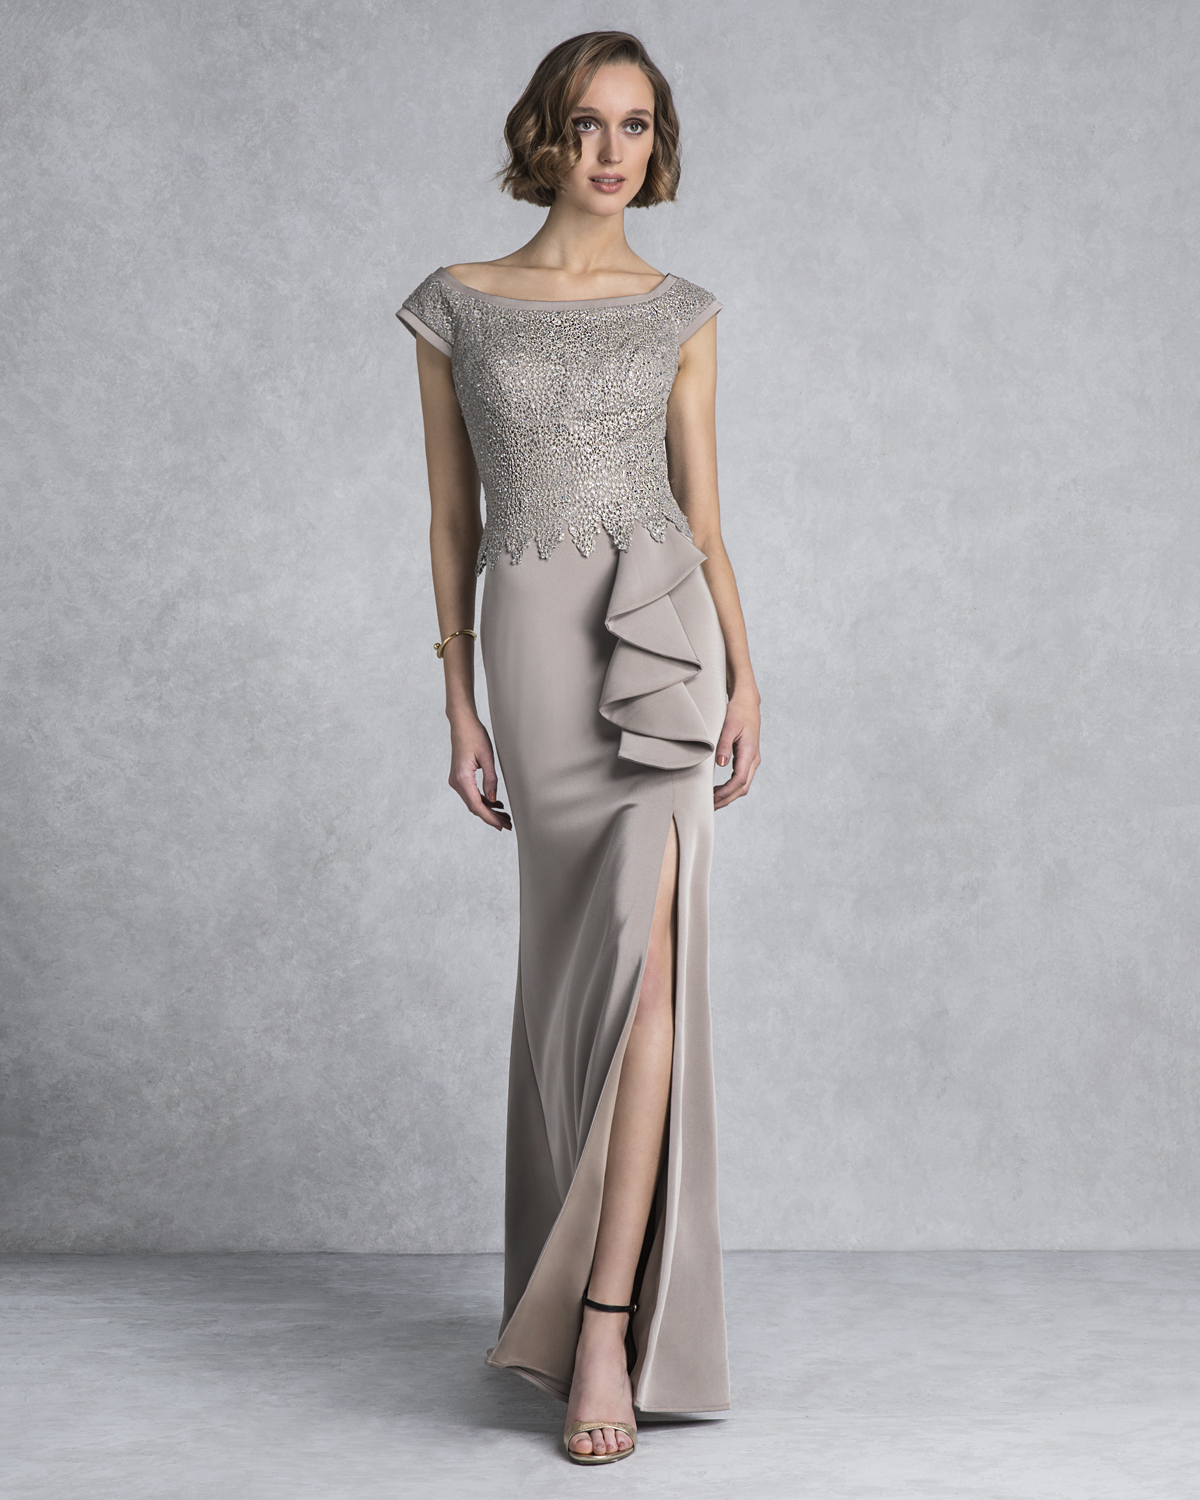 Classic Dresses / Long evening dress with lace and beading for the mother of the bride